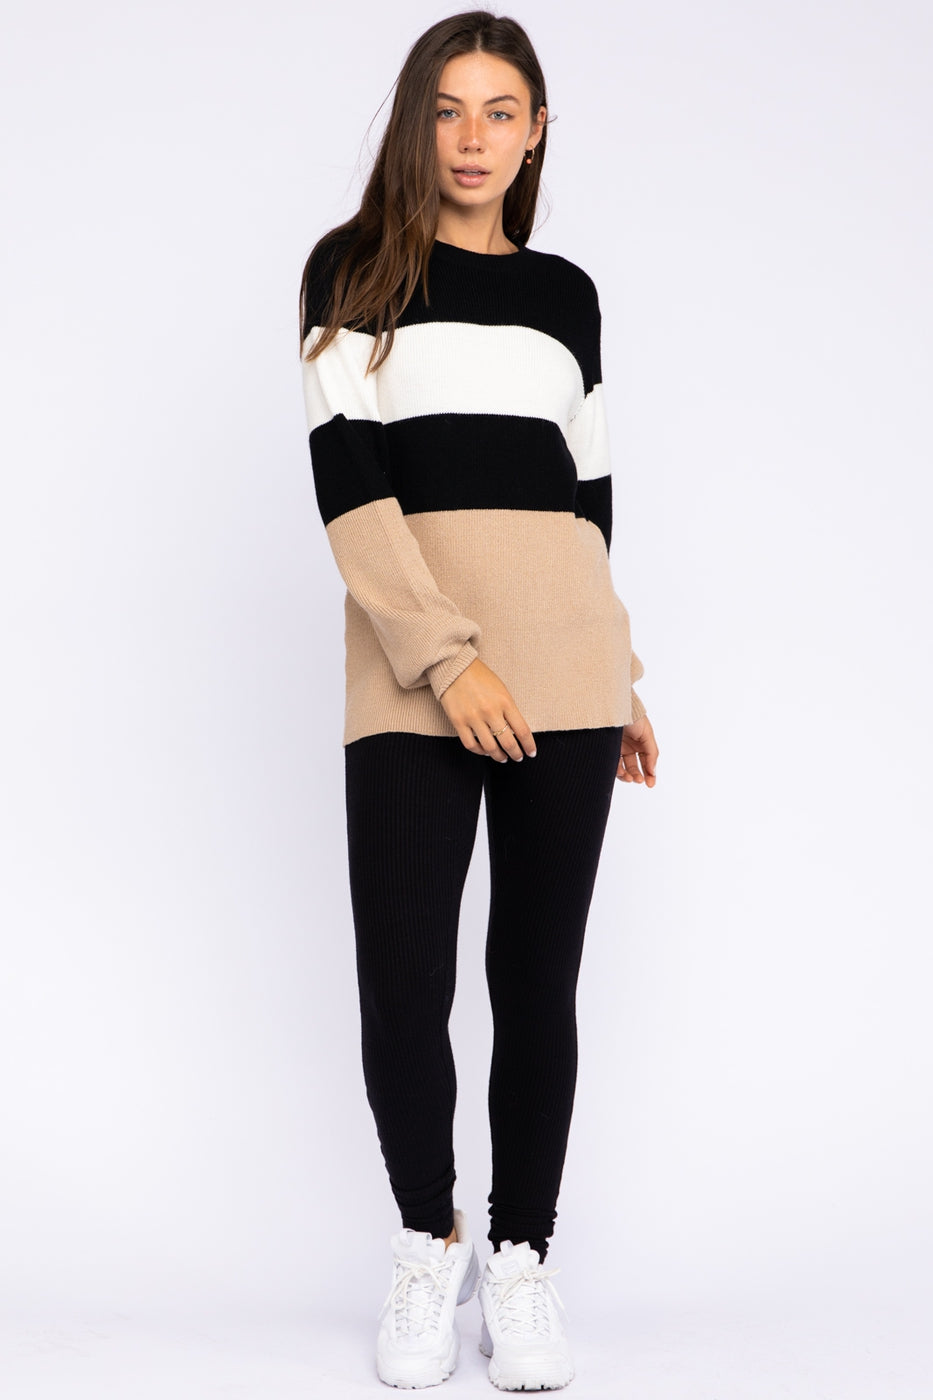 Multi Colorblock Knit Sweater In Black-White-Tan Siin Bees